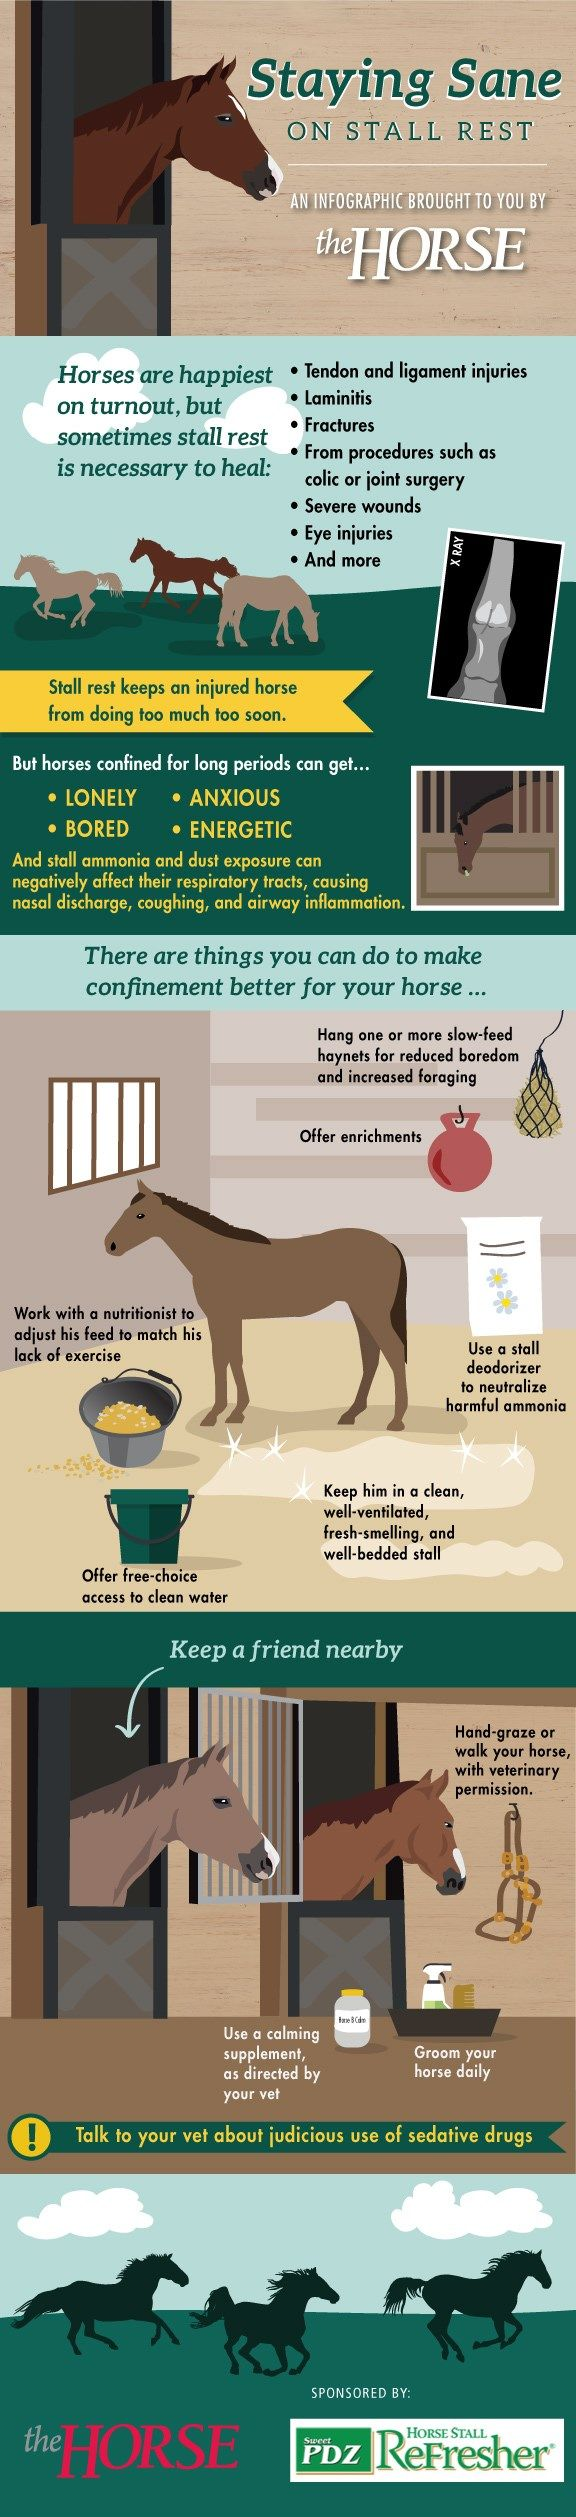 Confinement is difficult but often necessary for healing. Learn how to keep horses healthy while on stall rest.